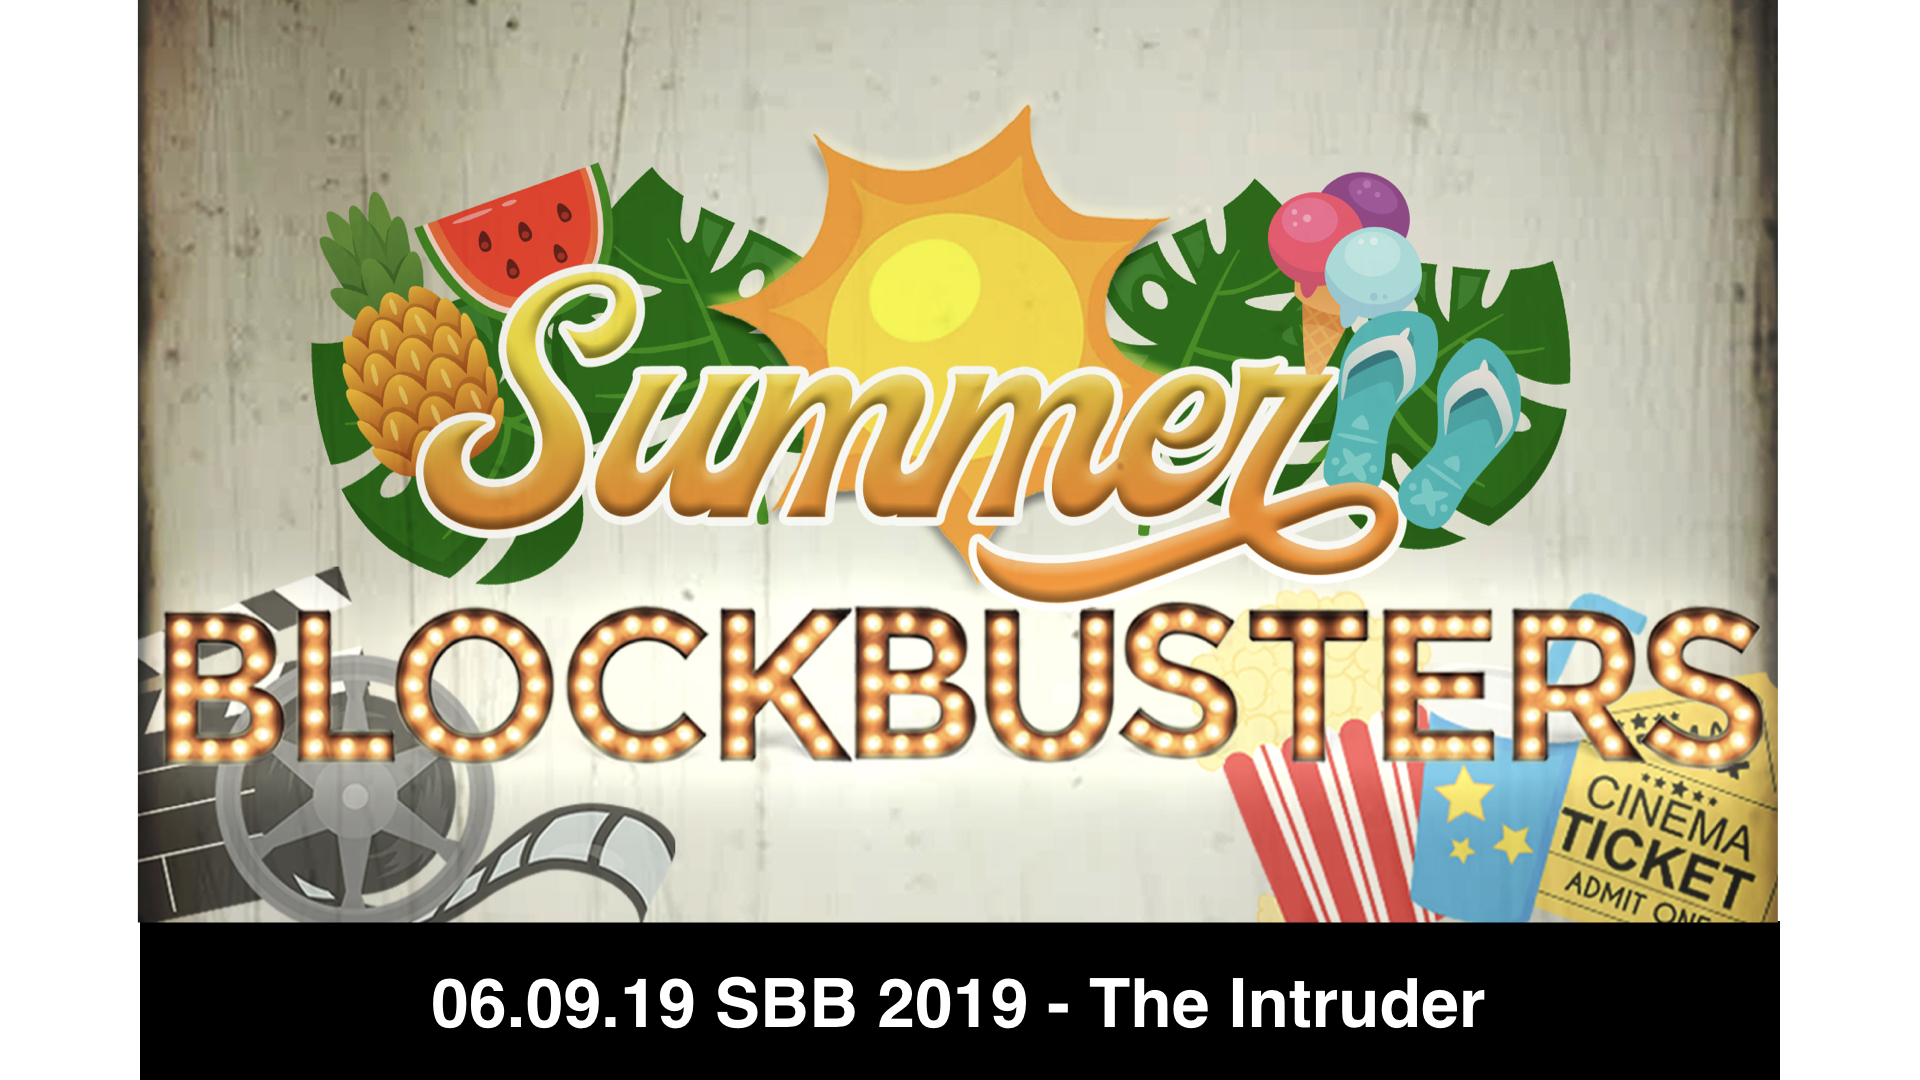 06.09.19 SBB 2019 - The Intruder